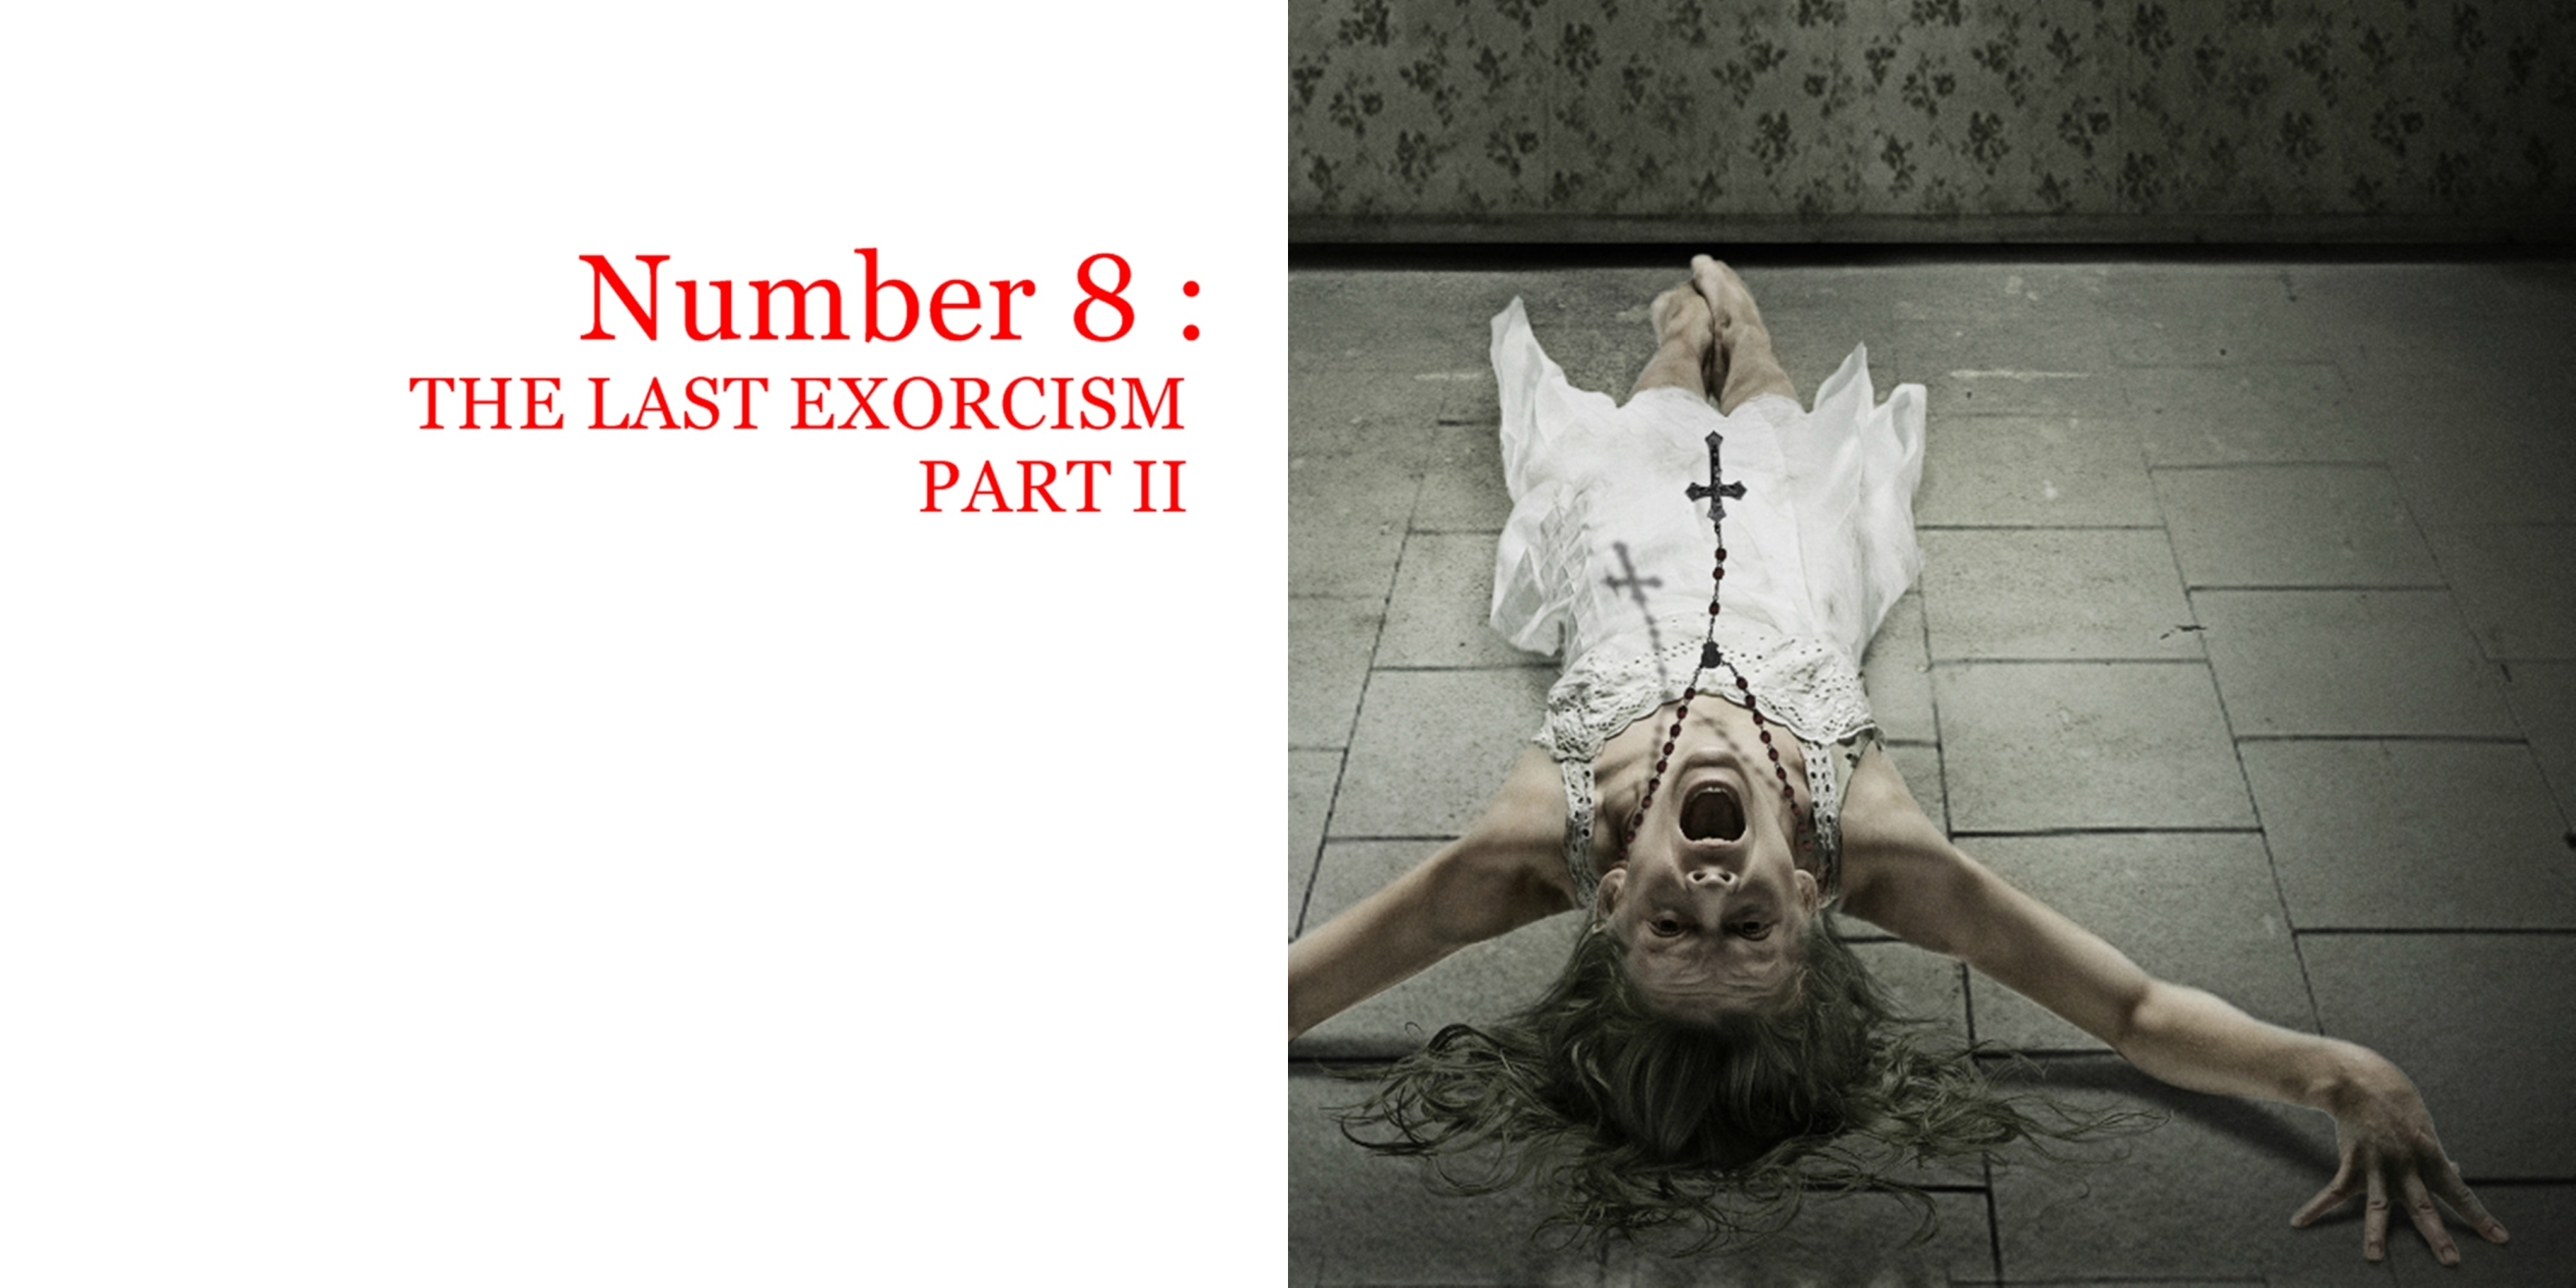 the exorcism final